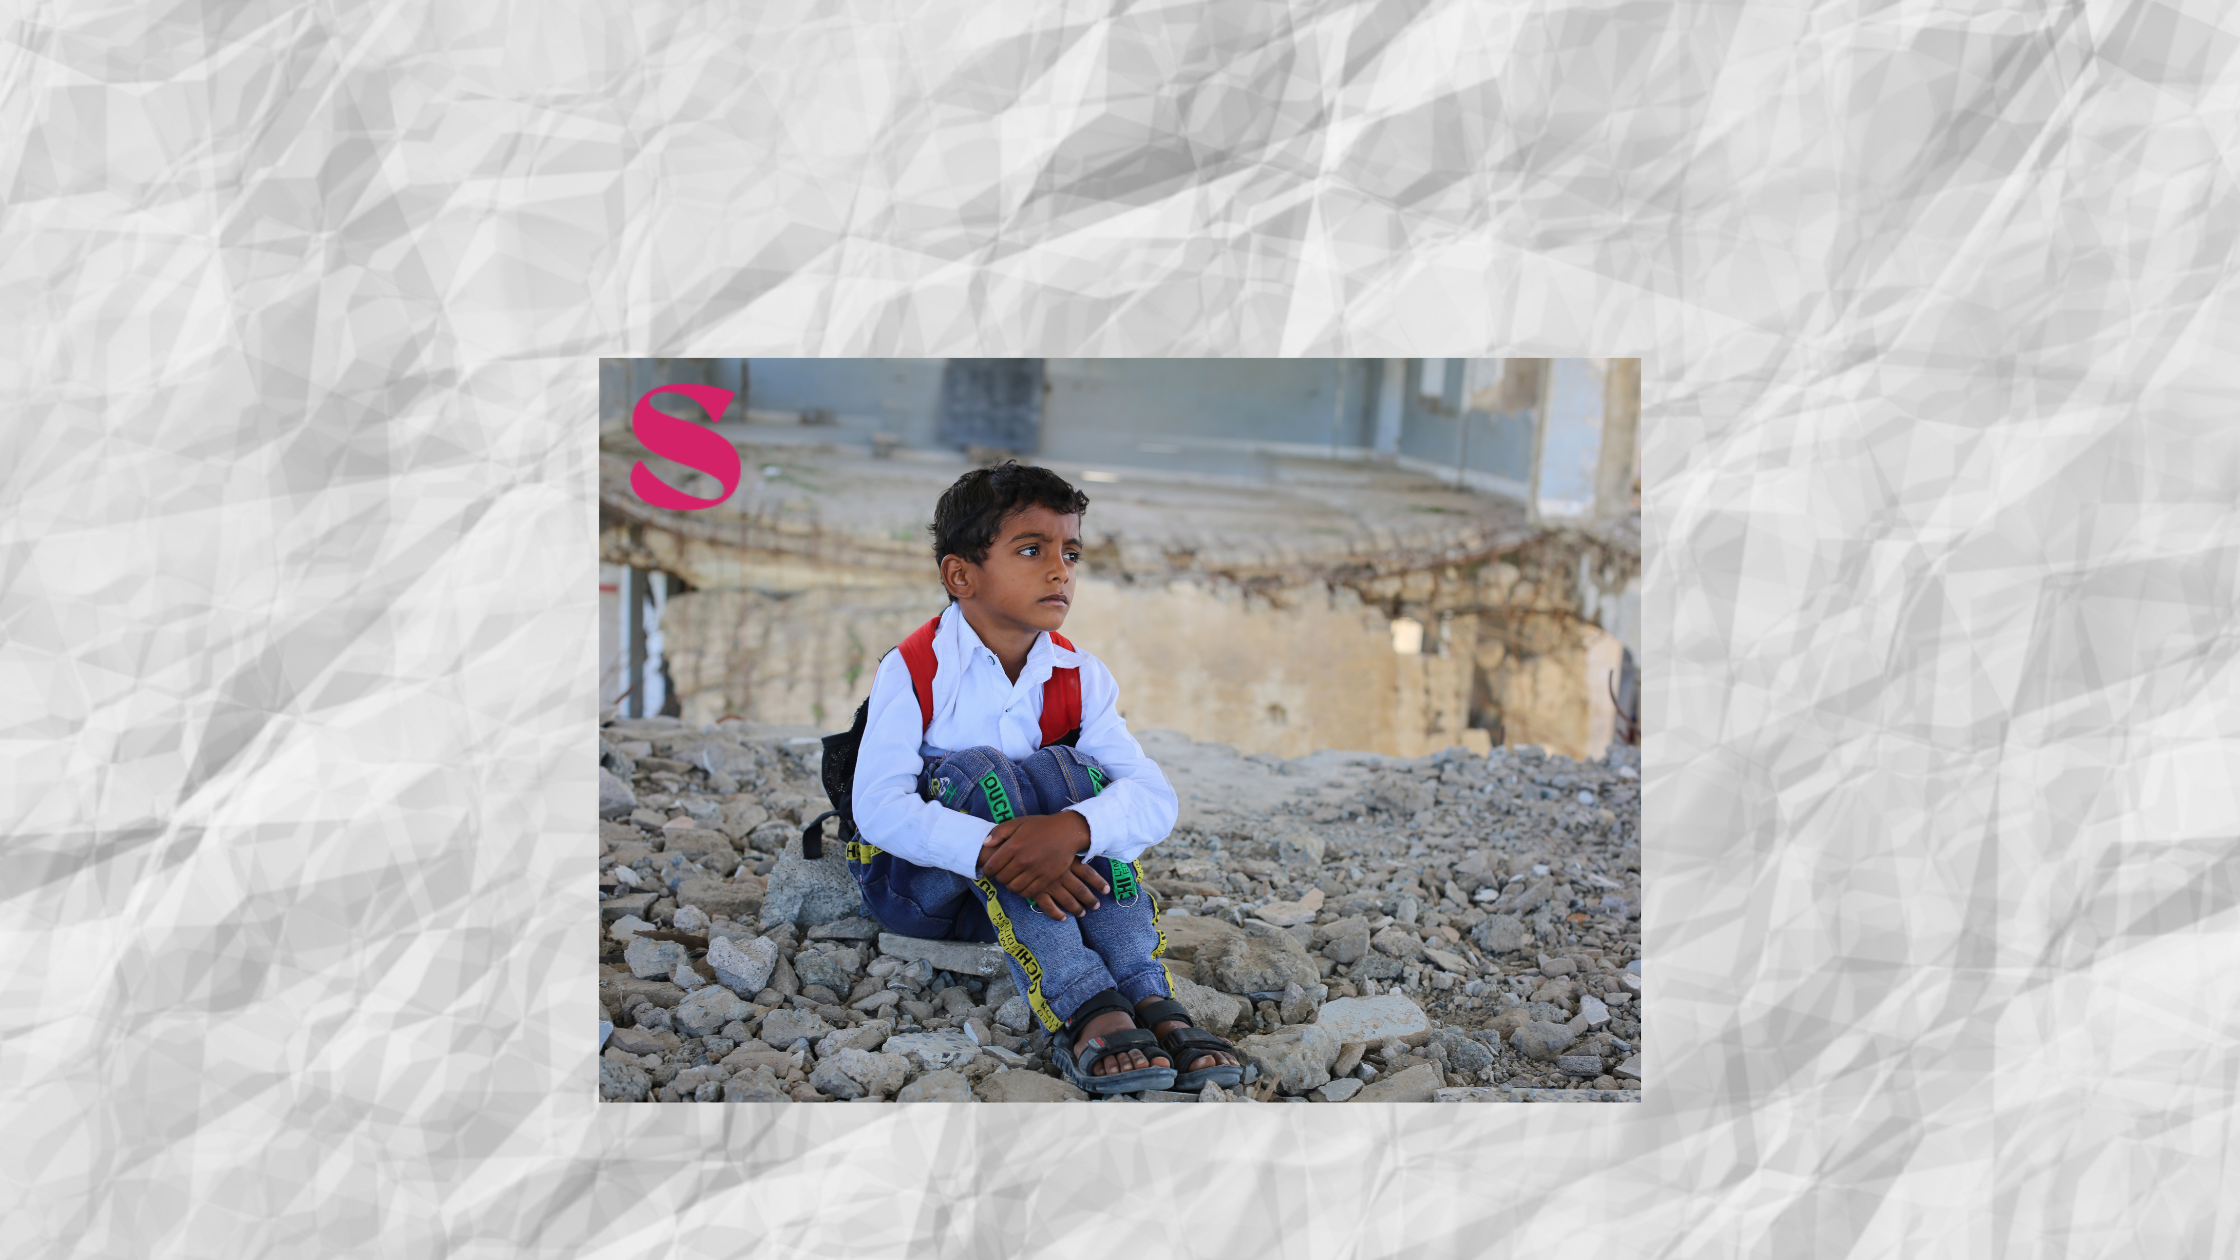 Young Yemen boy sitting on a pile of rubble